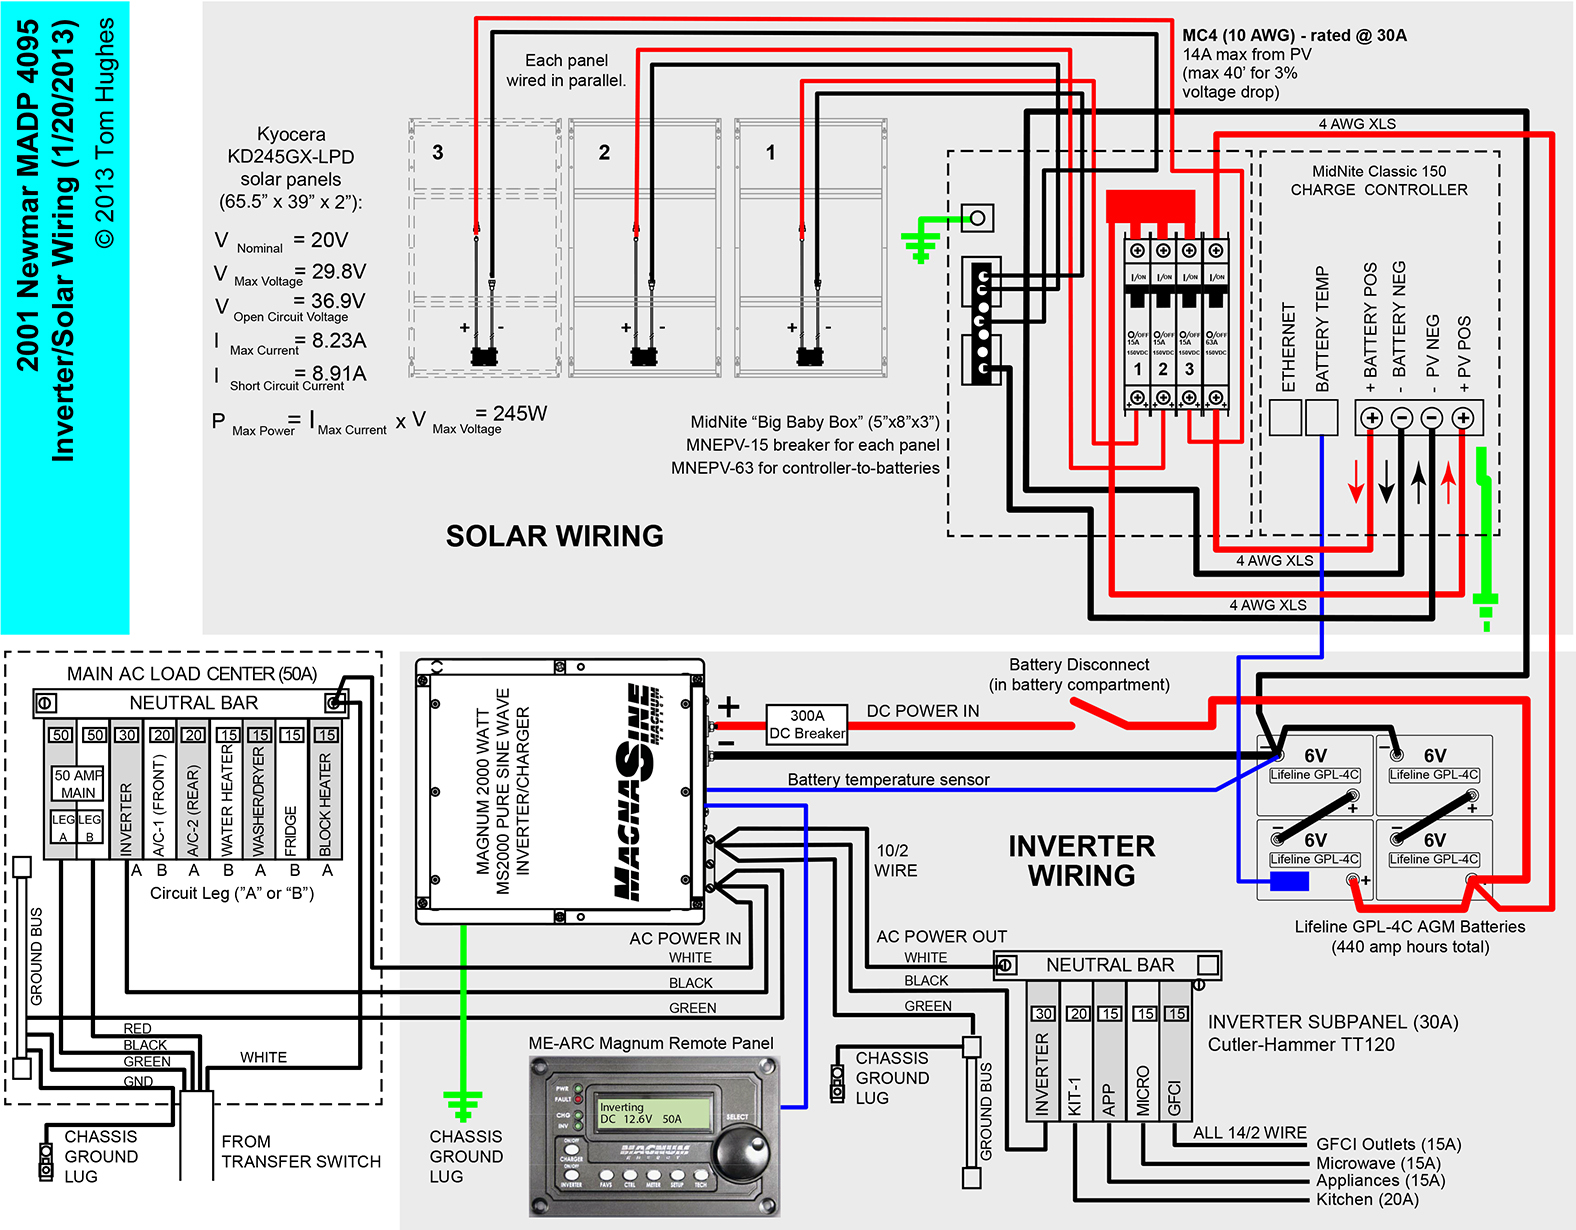 ms2000_newmar_inverter_wiring_01_20_2013 rv inverter diagram rv inverter transfer switch \u2022 wiring diagrams rv transfer switch wiring diagram at gsmx.co